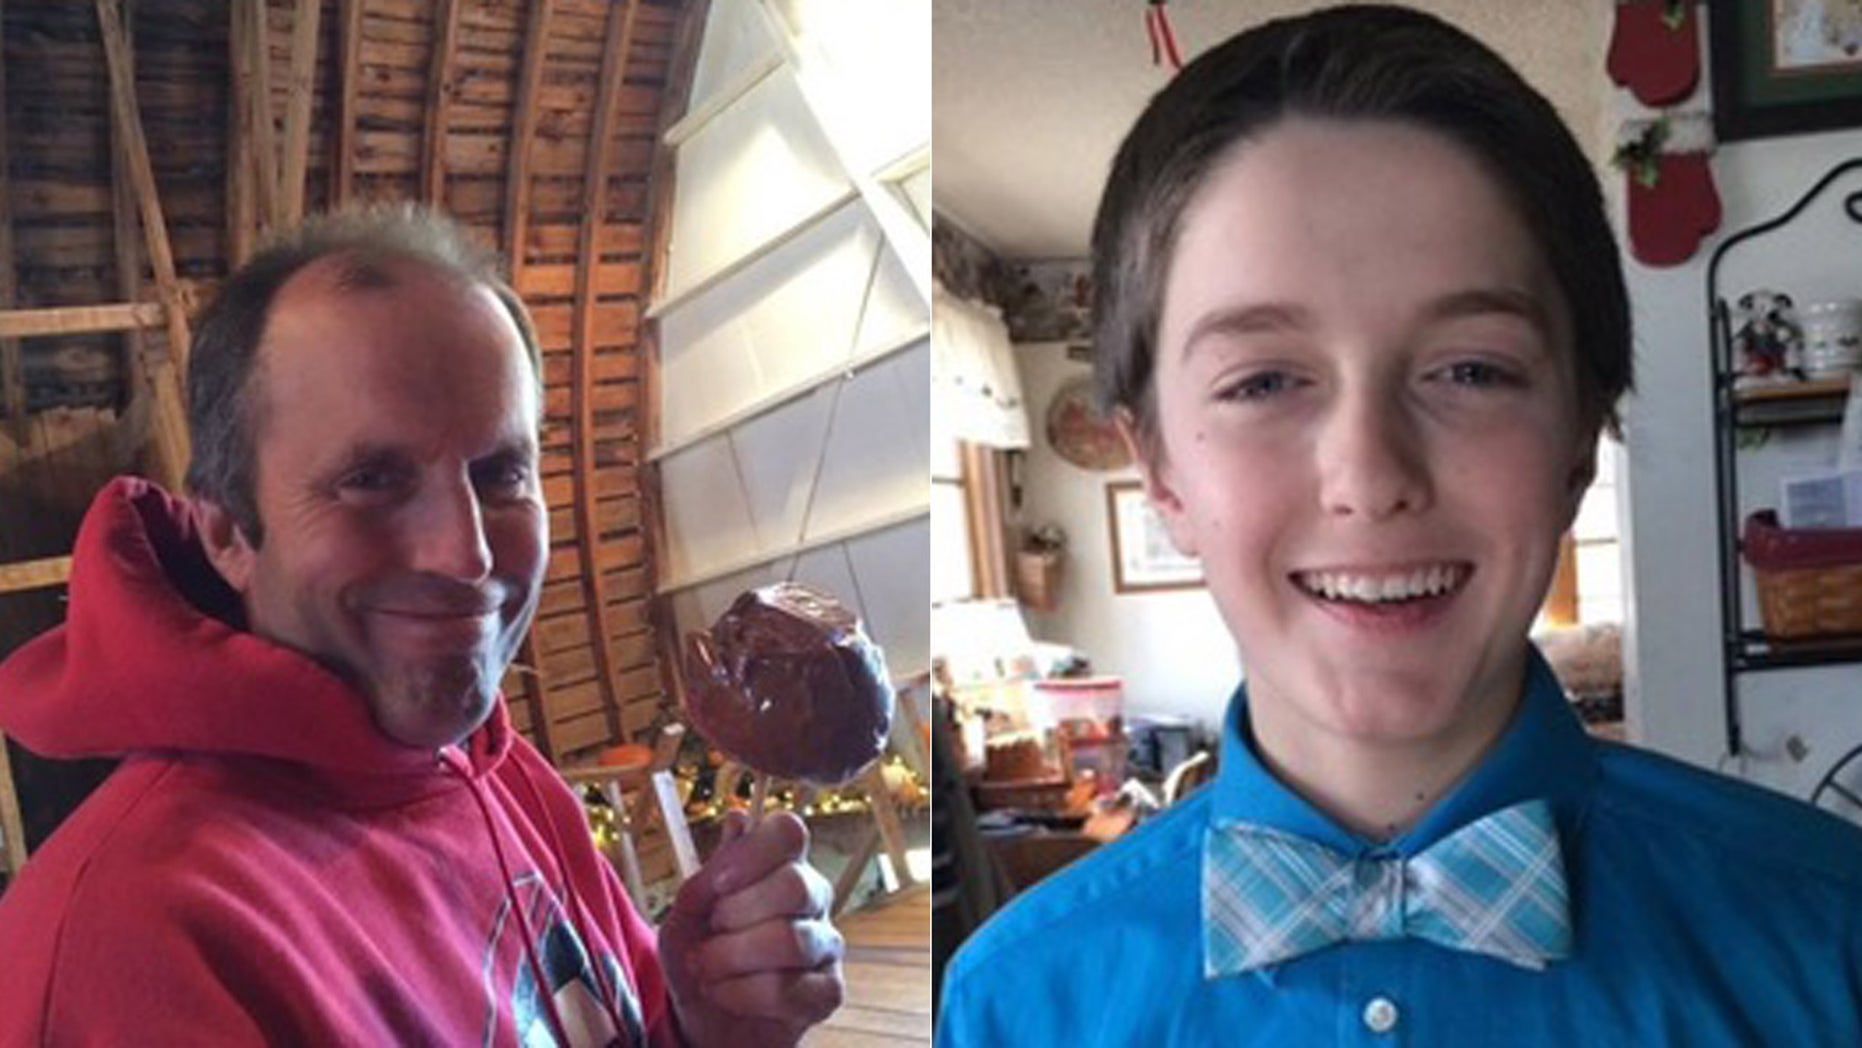 Daniel Briel and his 14-year-old son, David Briel, were both killed in a collapse in a silo at their Wisconsin farm.